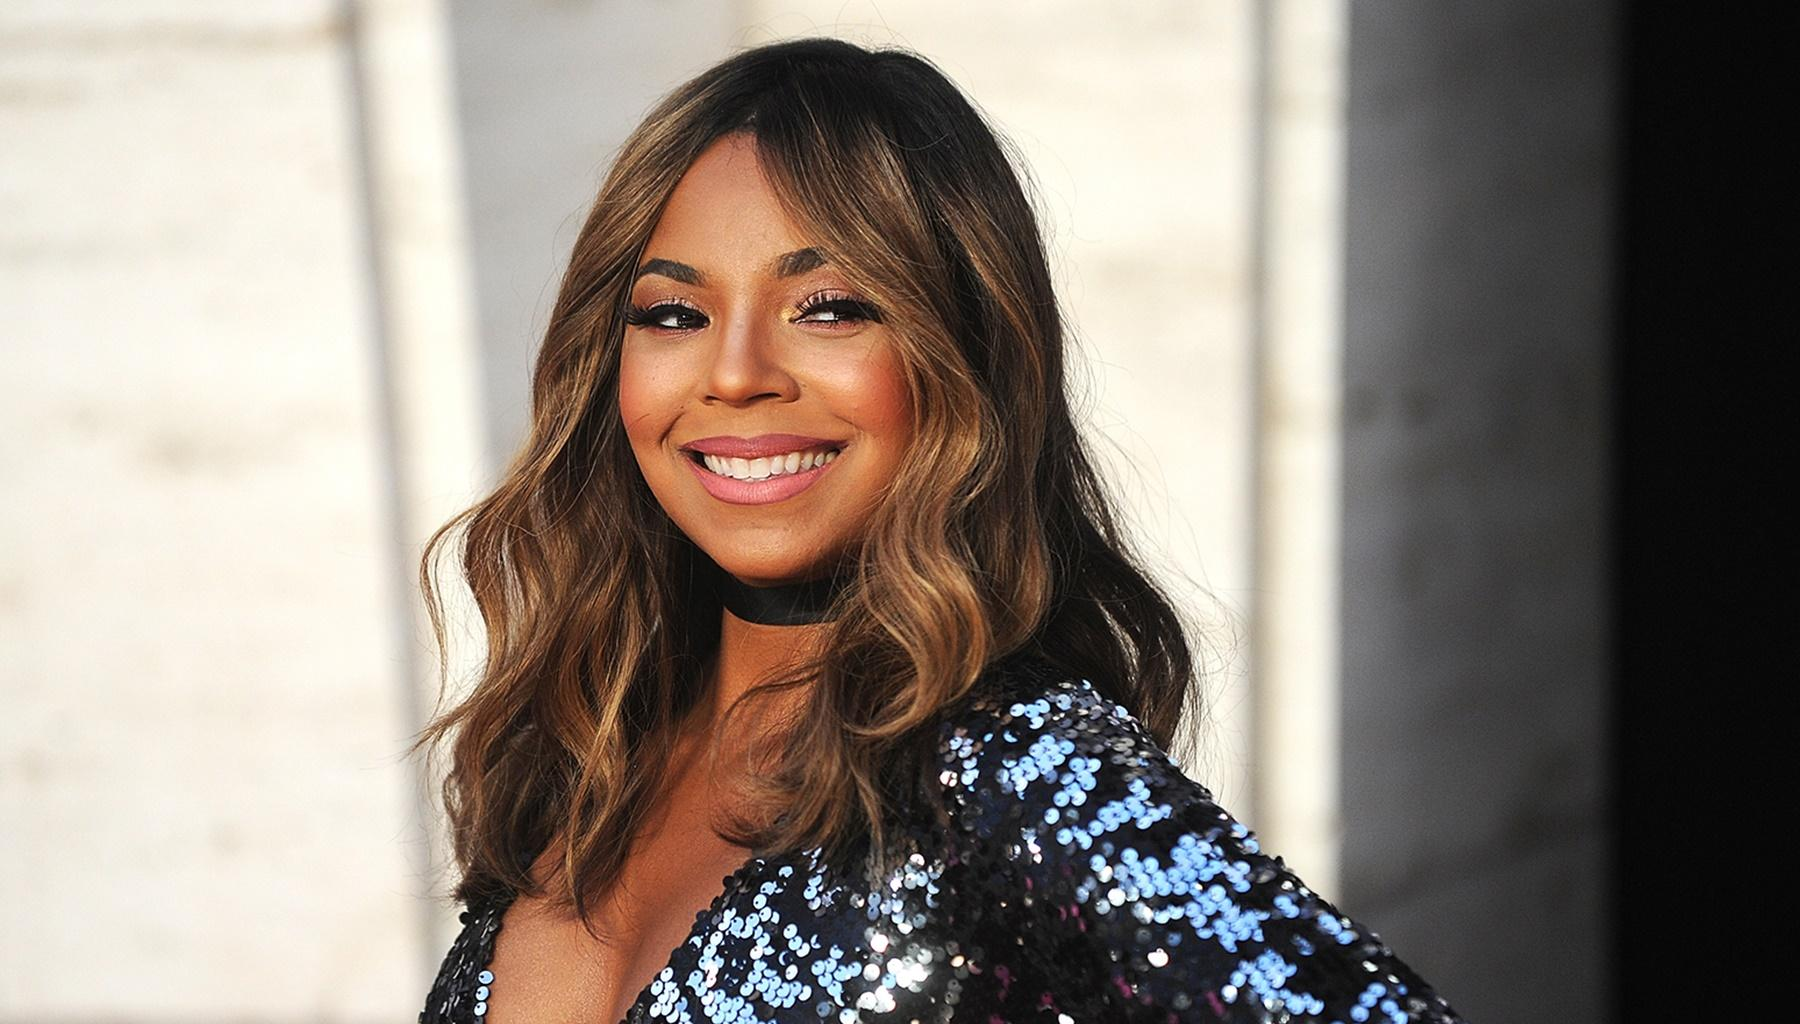 Ashanti Dances In Tiny Bathing Suit Under The Shower While Singing 'Rain On Me' In Viral Video